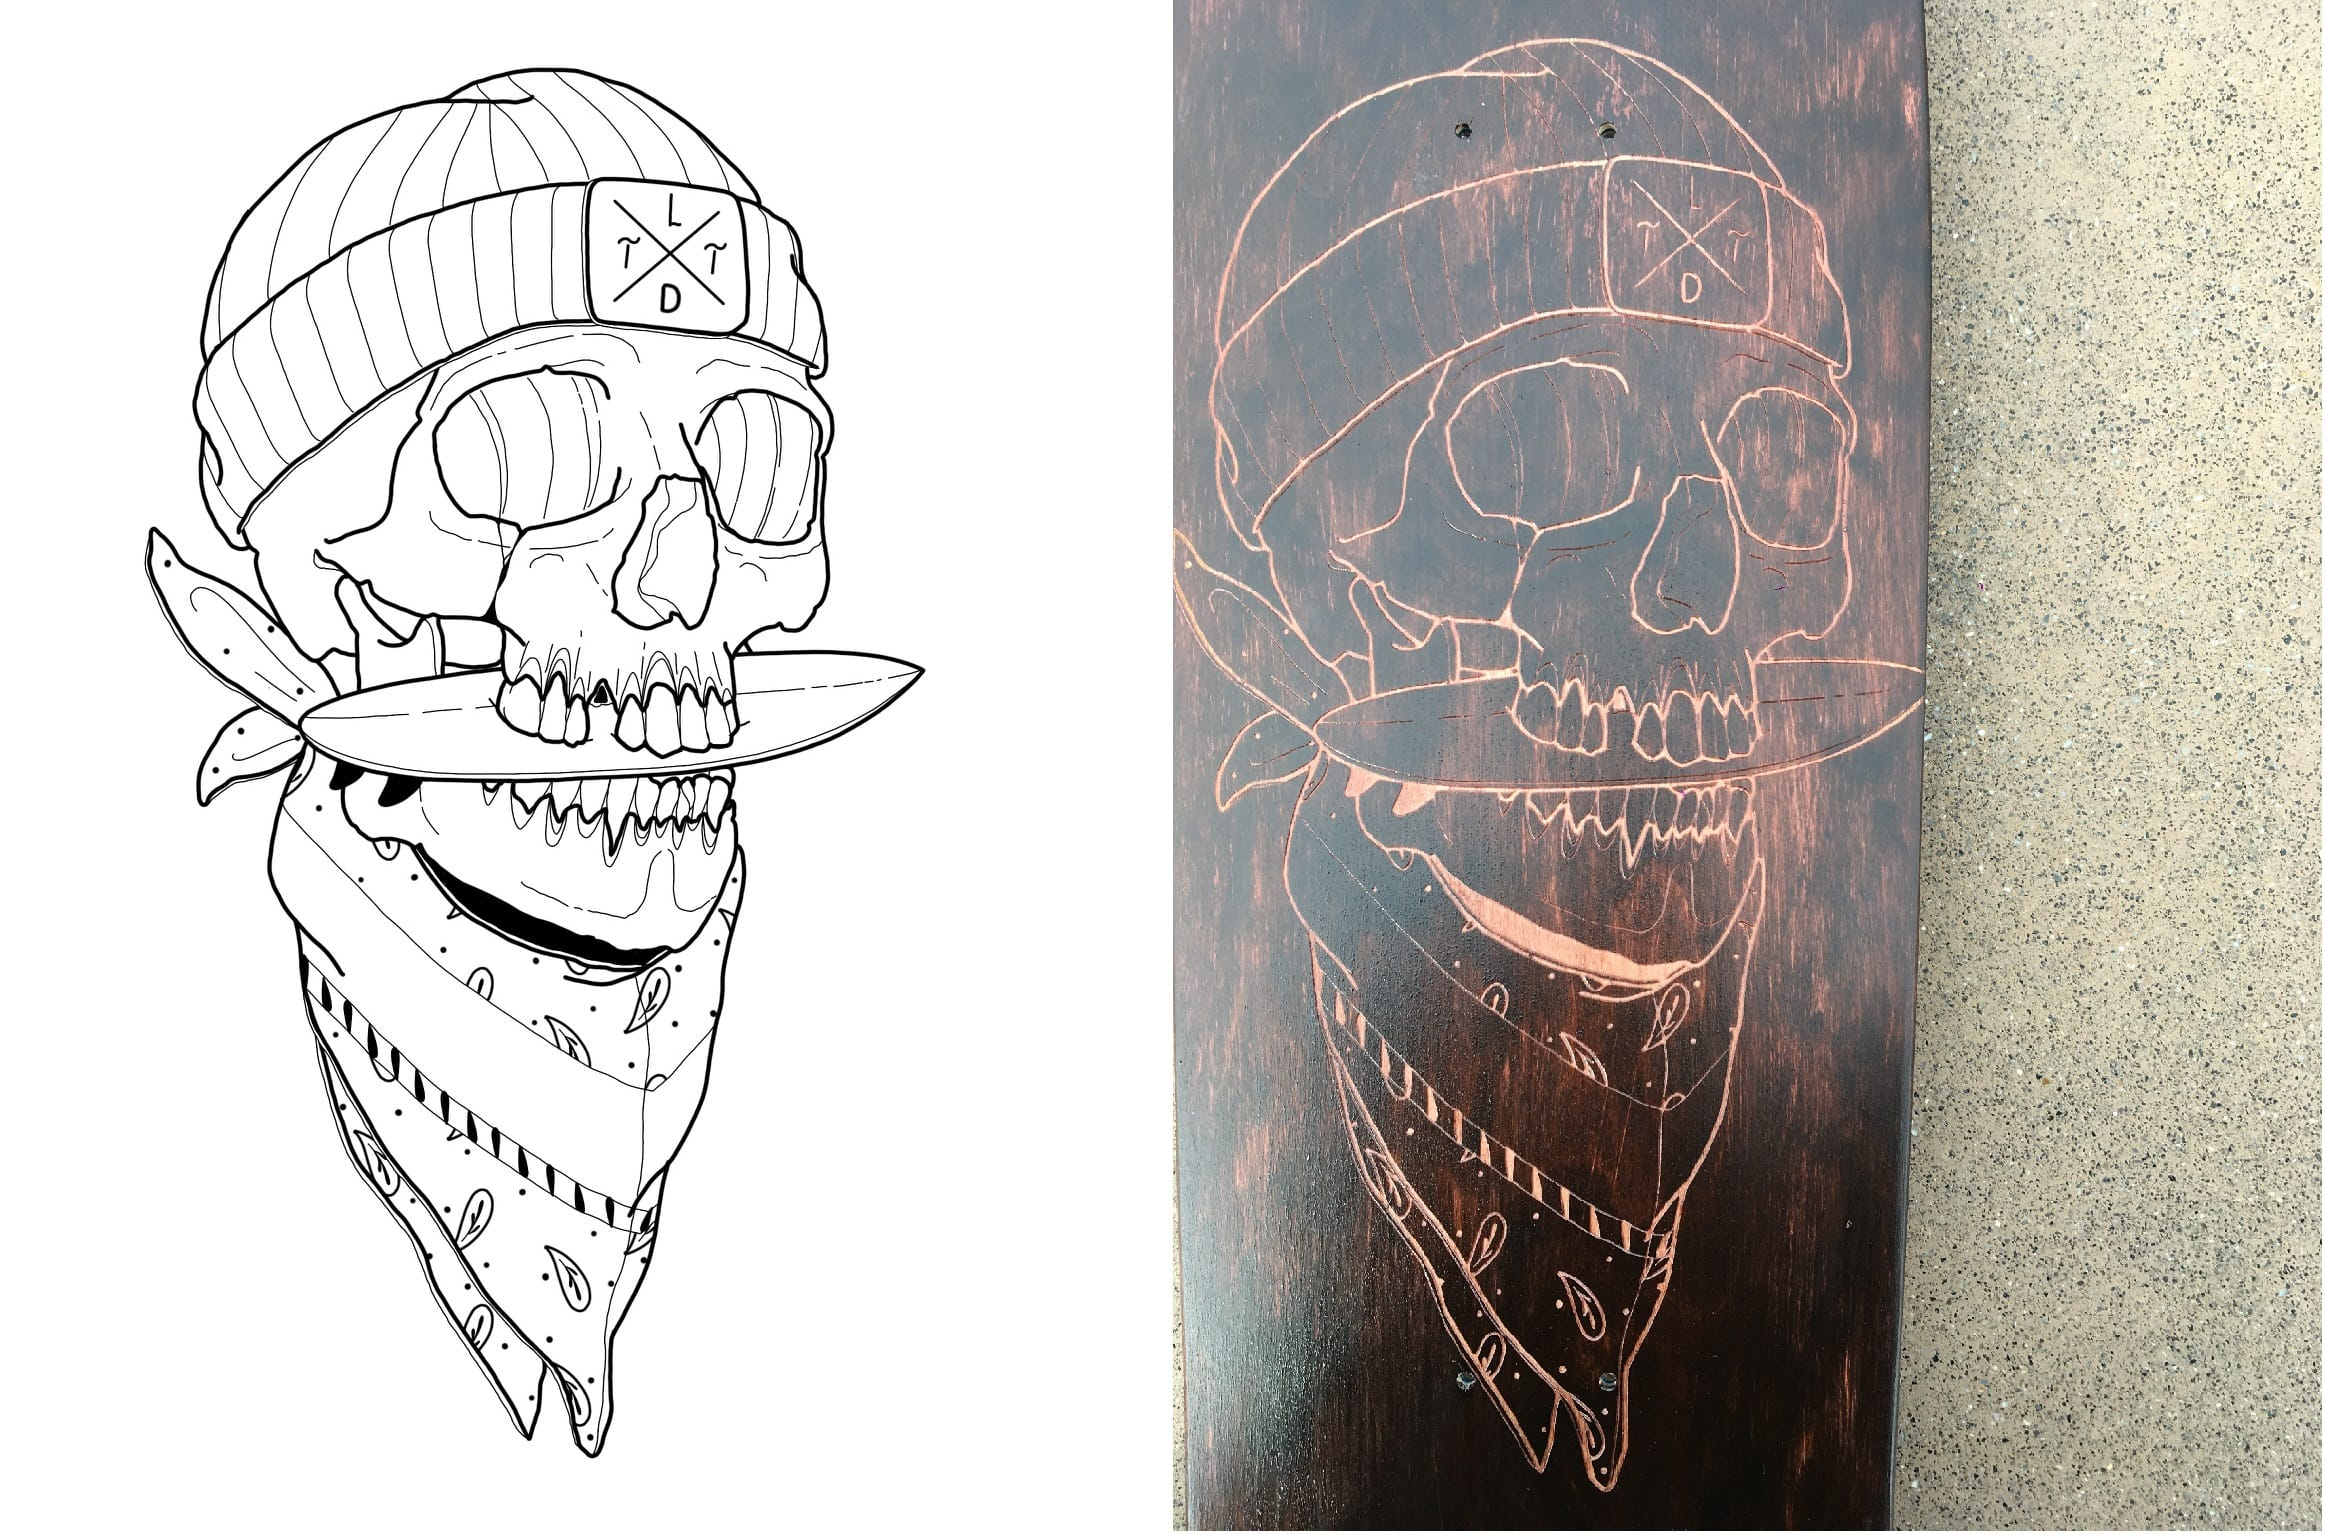 The original logo and the laser etching on the red tainted skateboard